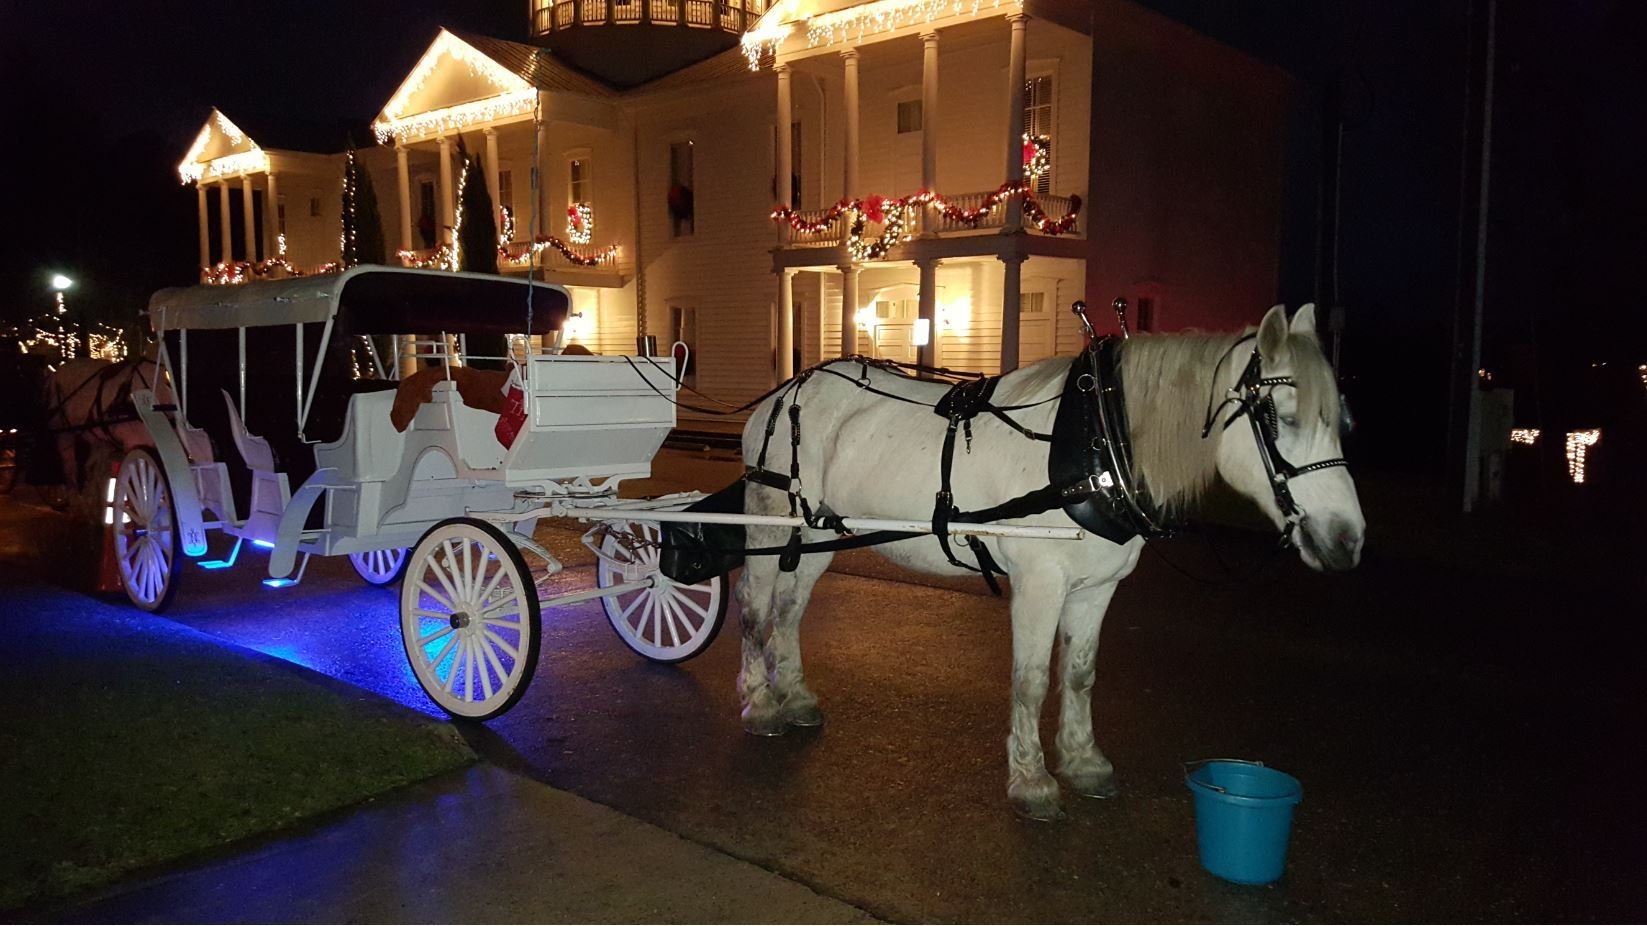 A horse and carriage in front of a large building illuminated with Christmas lights